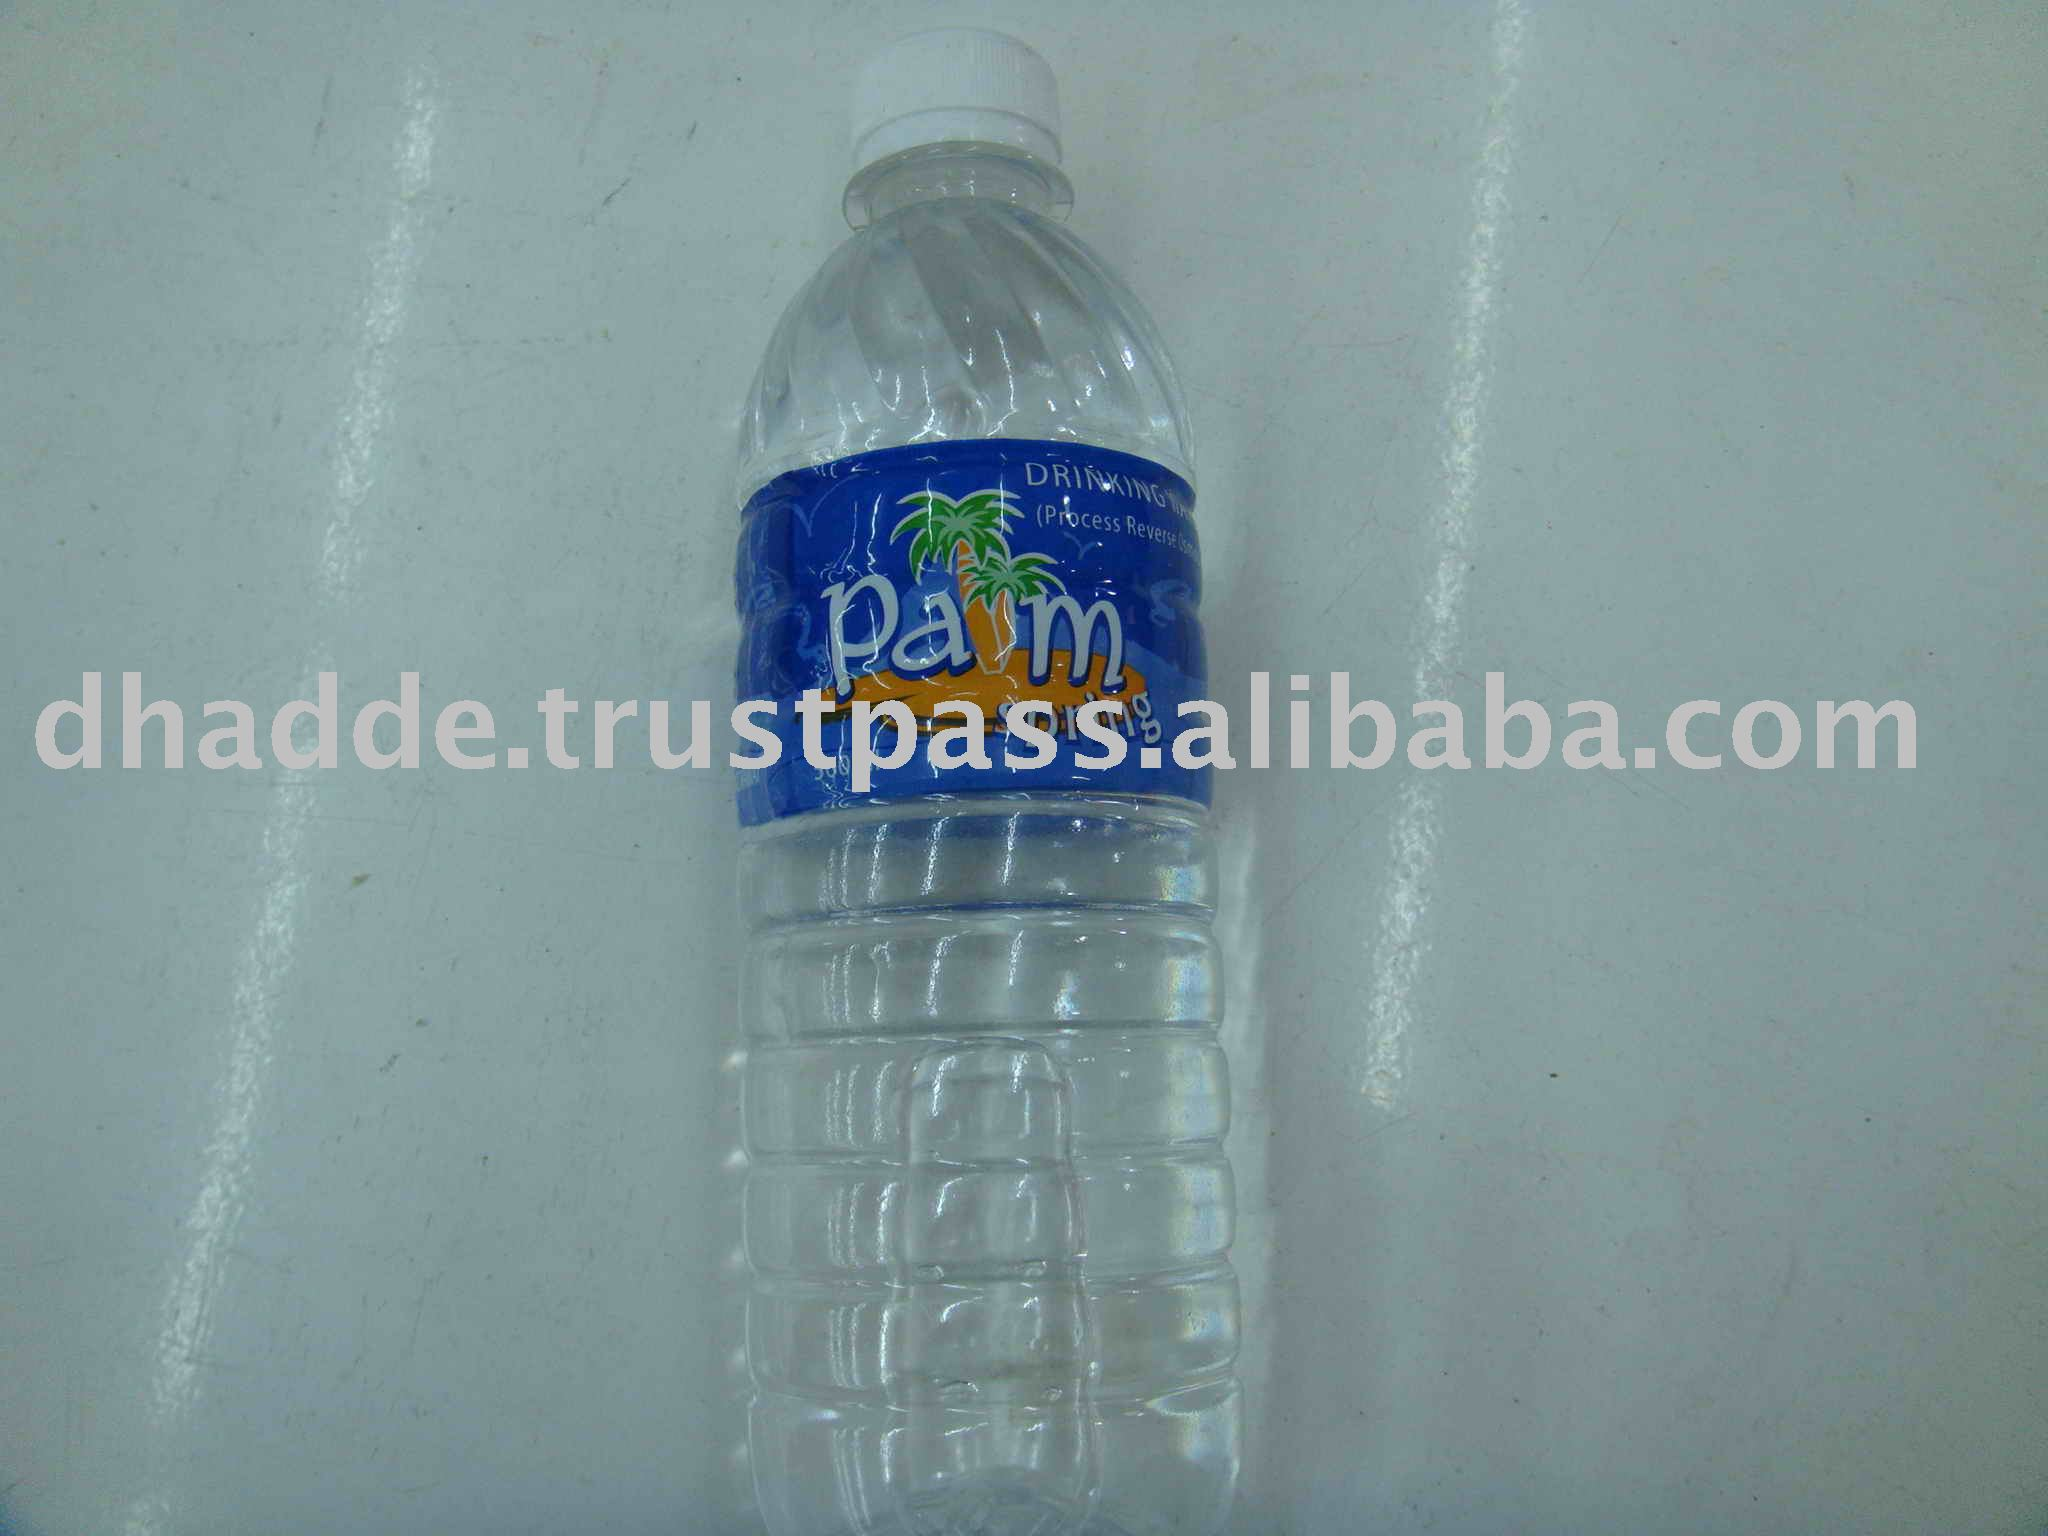 Mineral water is water containing minerals or other dissolved substances that alter its taste or give it therapeutic value